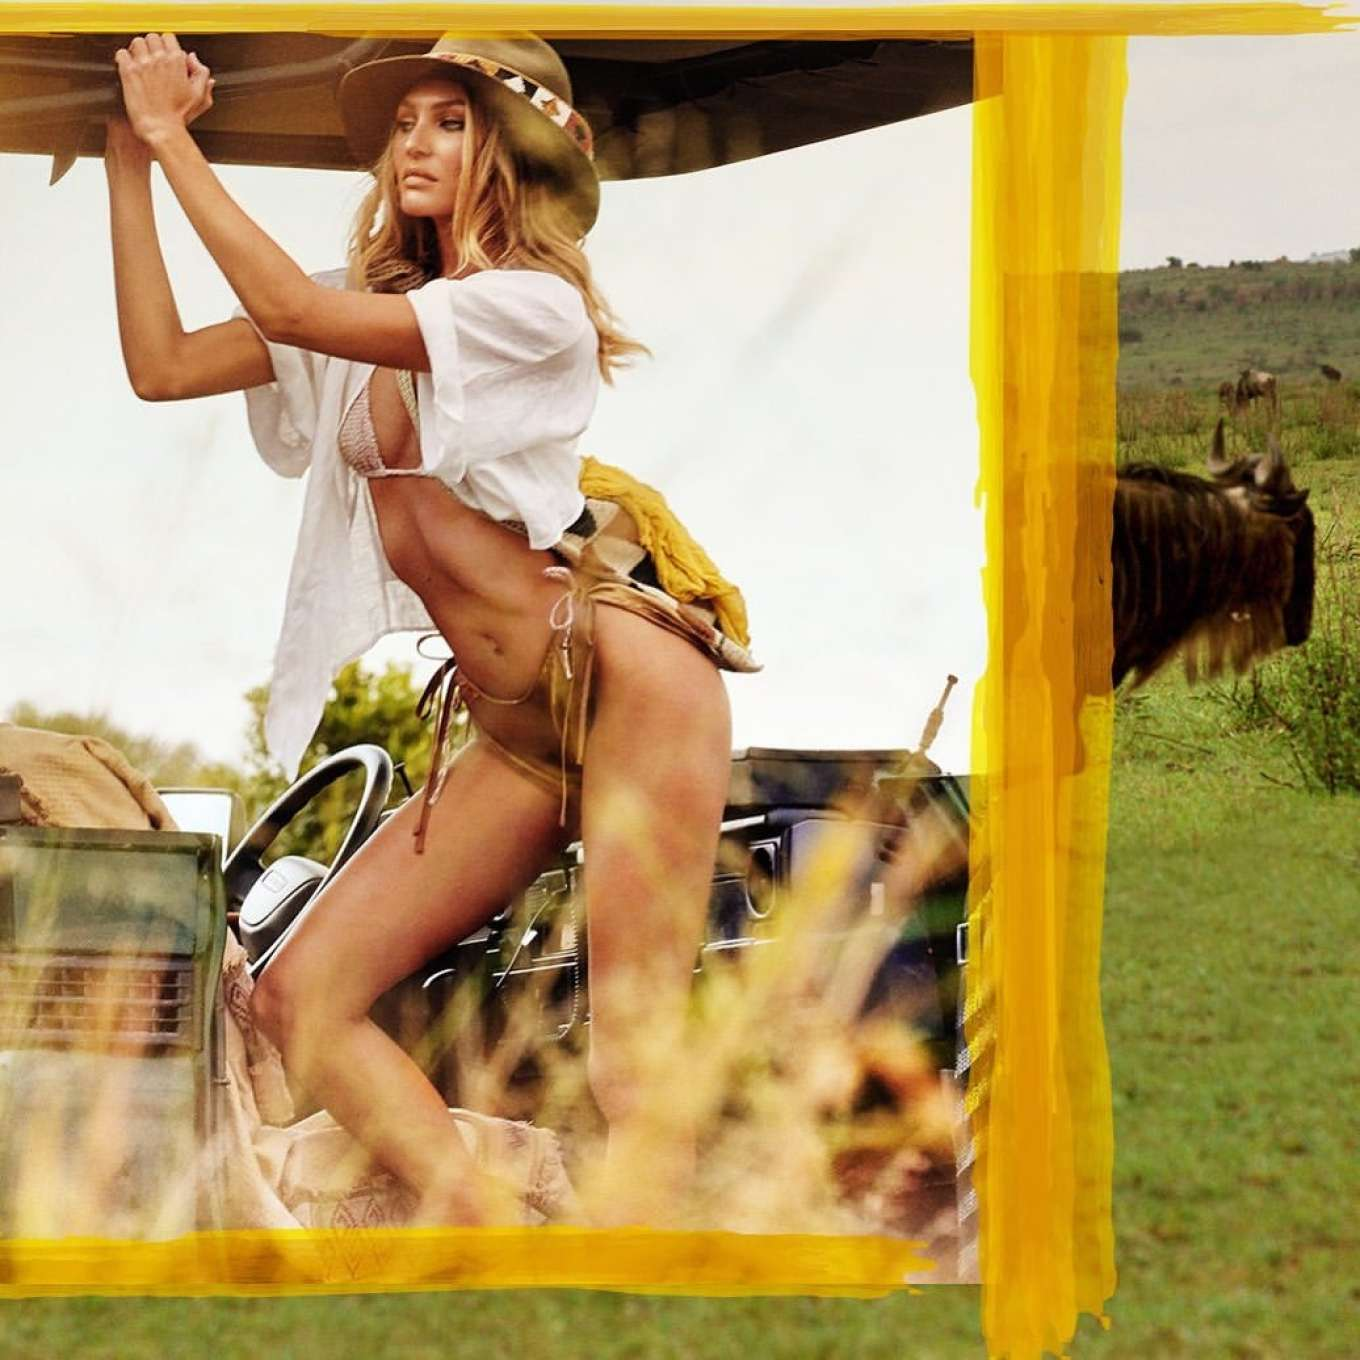 Candice Swanepoel 2019 : Candice Swanepoel – Tropic of C Collection 2020-07